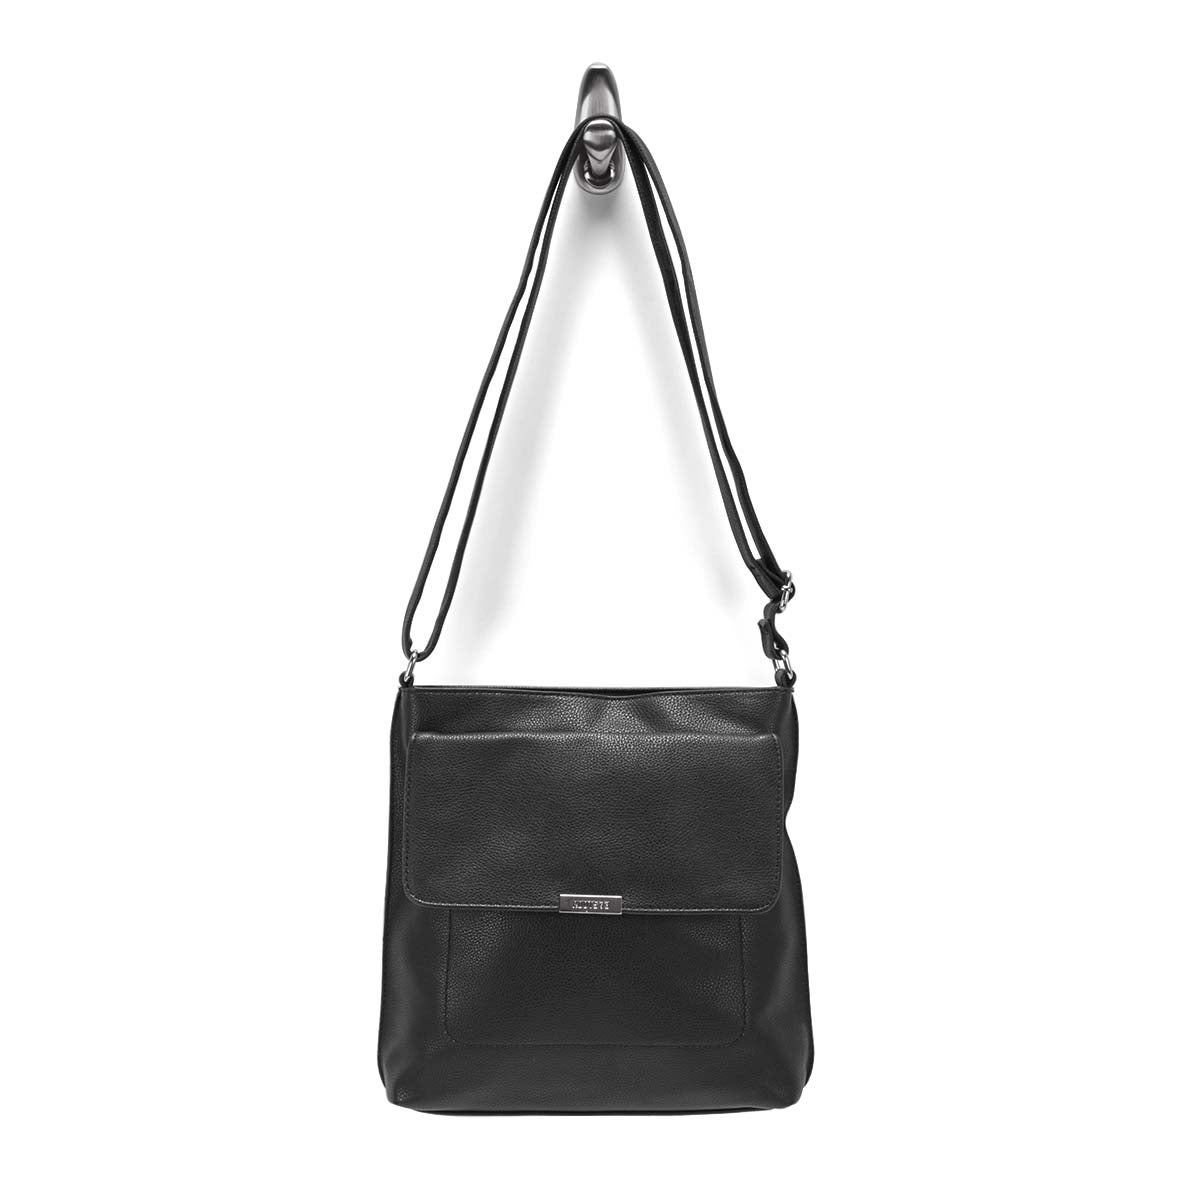 Lds Roots73 blk front flap crossbody